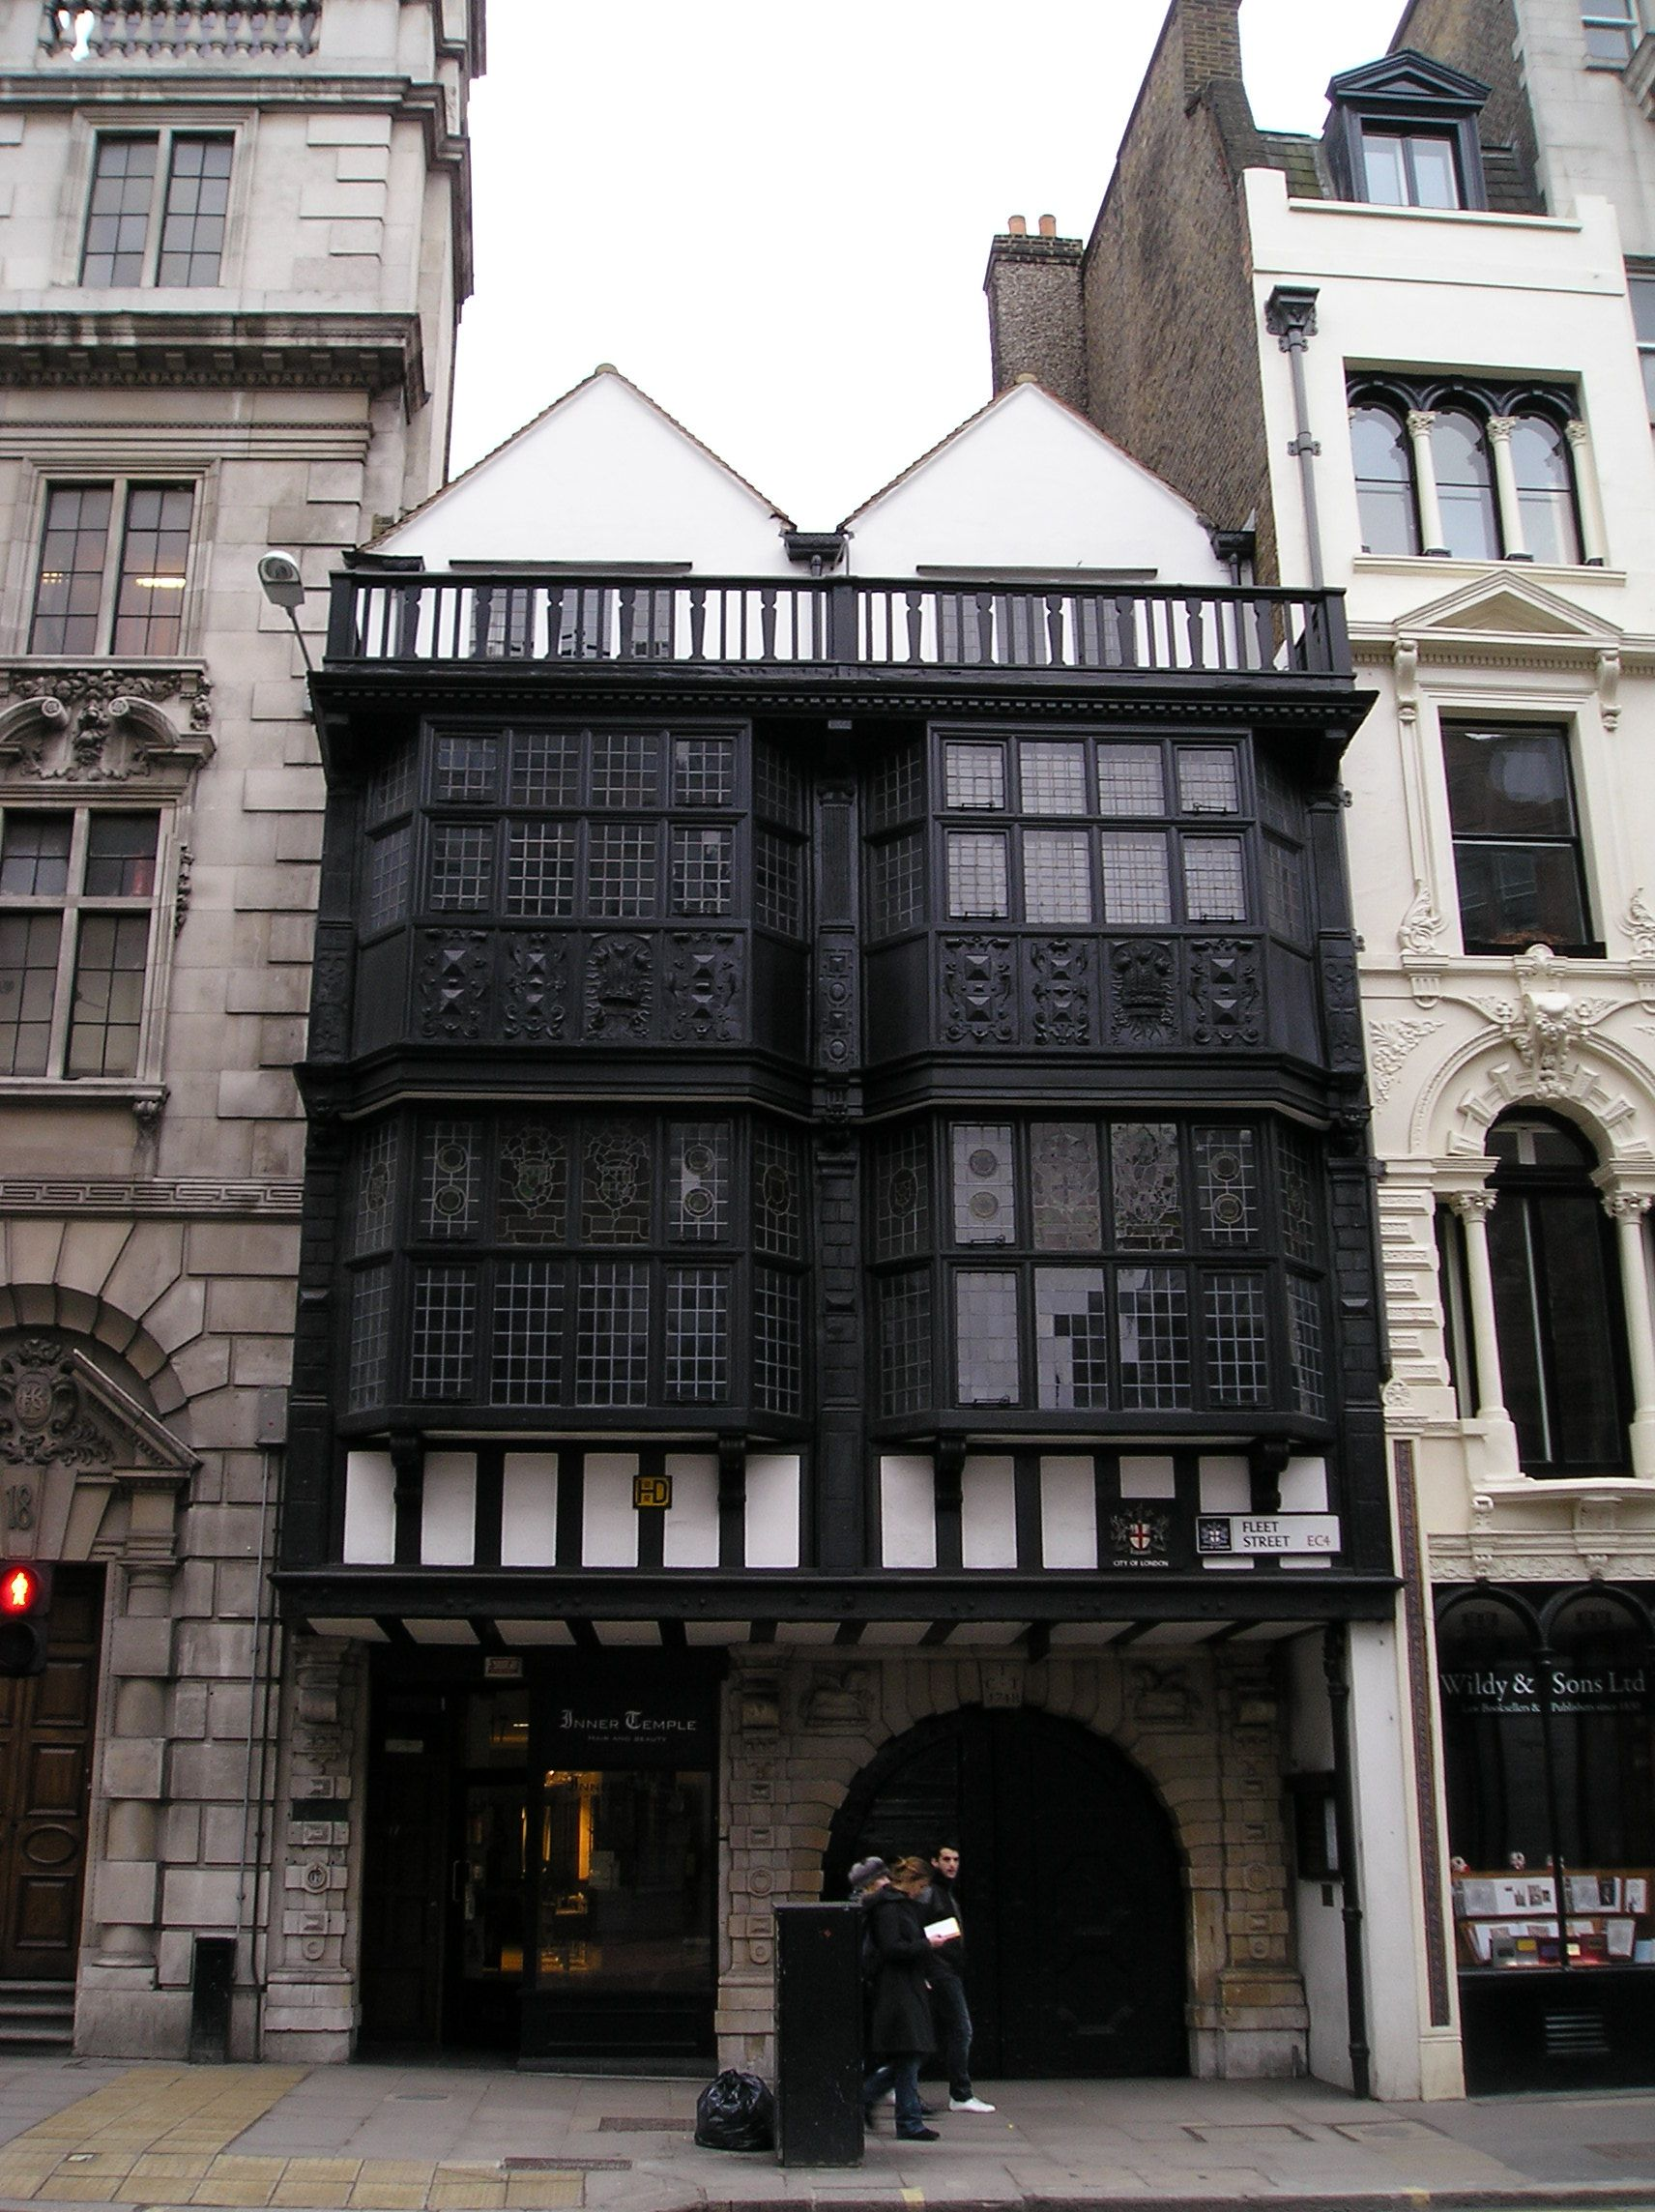 Prince Henry S Room Fleet Street One Of The Few Houses In London Which Survive Today From Before The Great Great Fire Of London The Great Fire London City